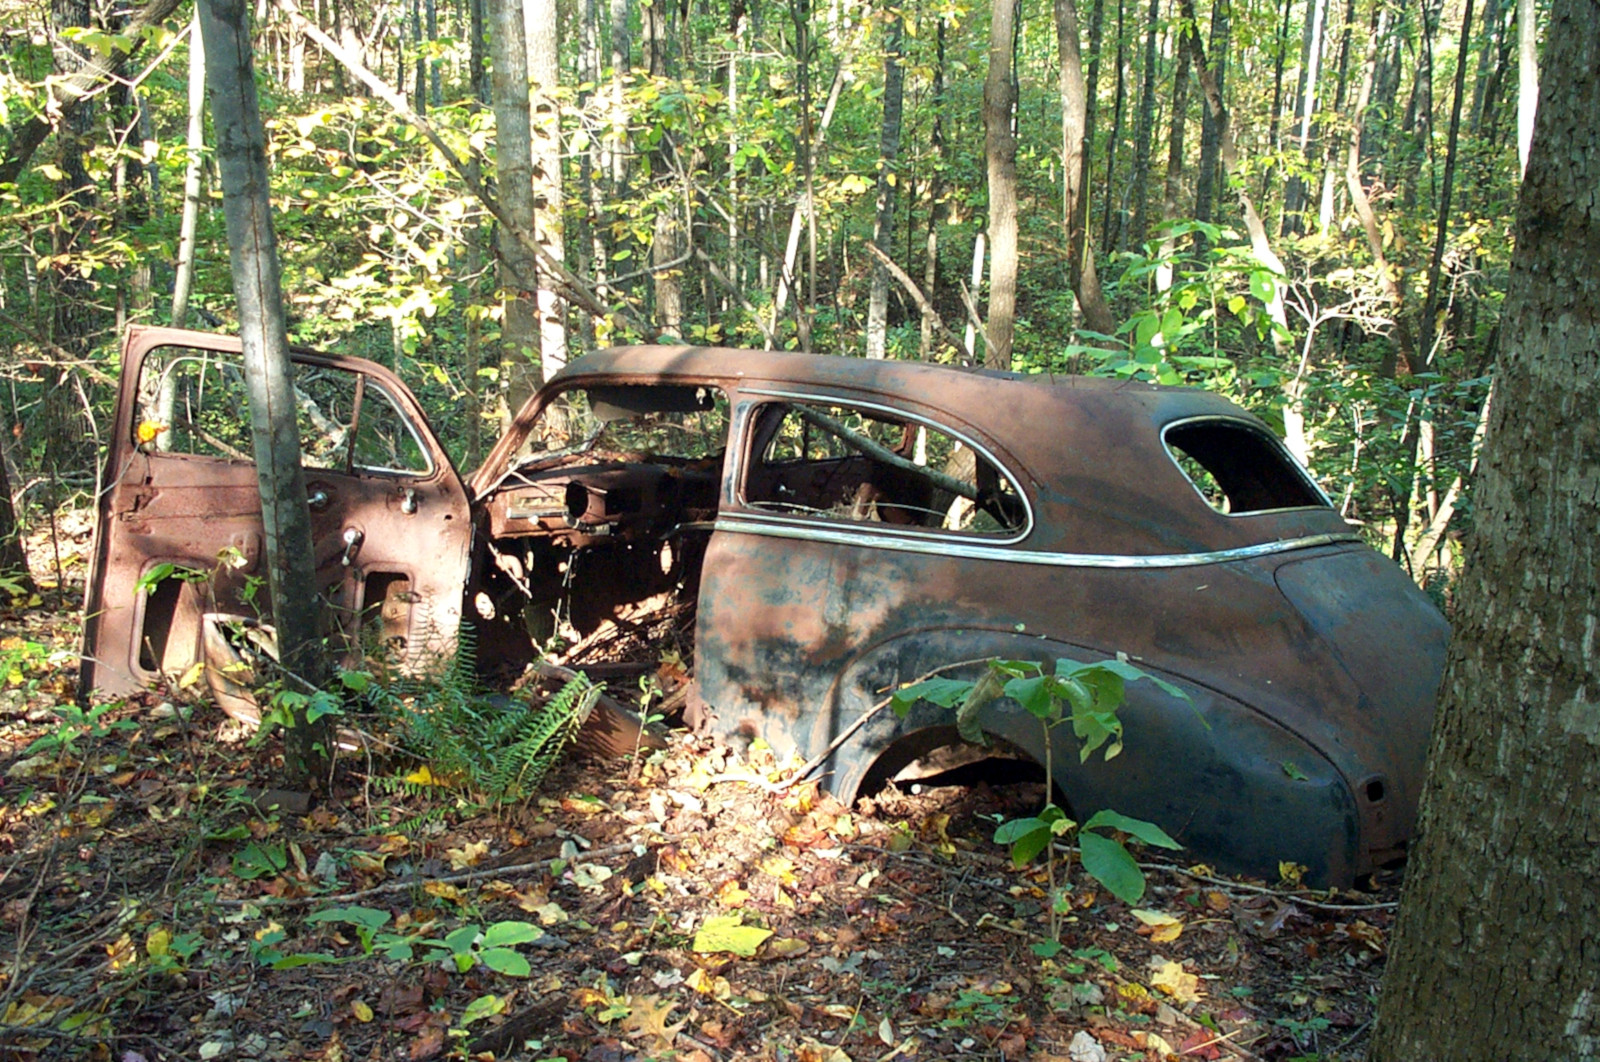 old car found hiking in woods